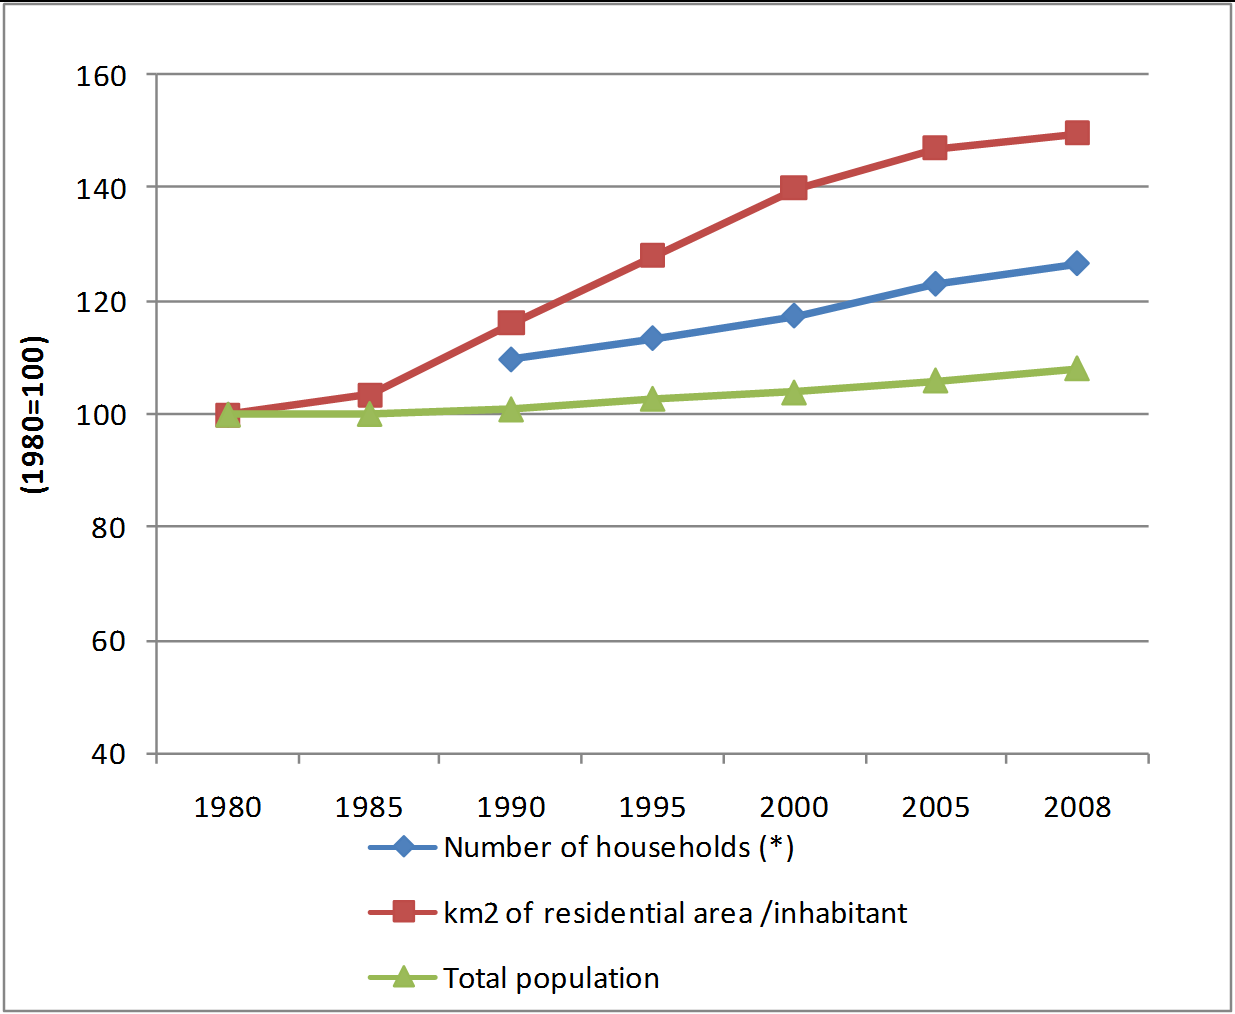 Figure 4: Population, number of households and residential area per inhabitant in Belgium, 1985-2008